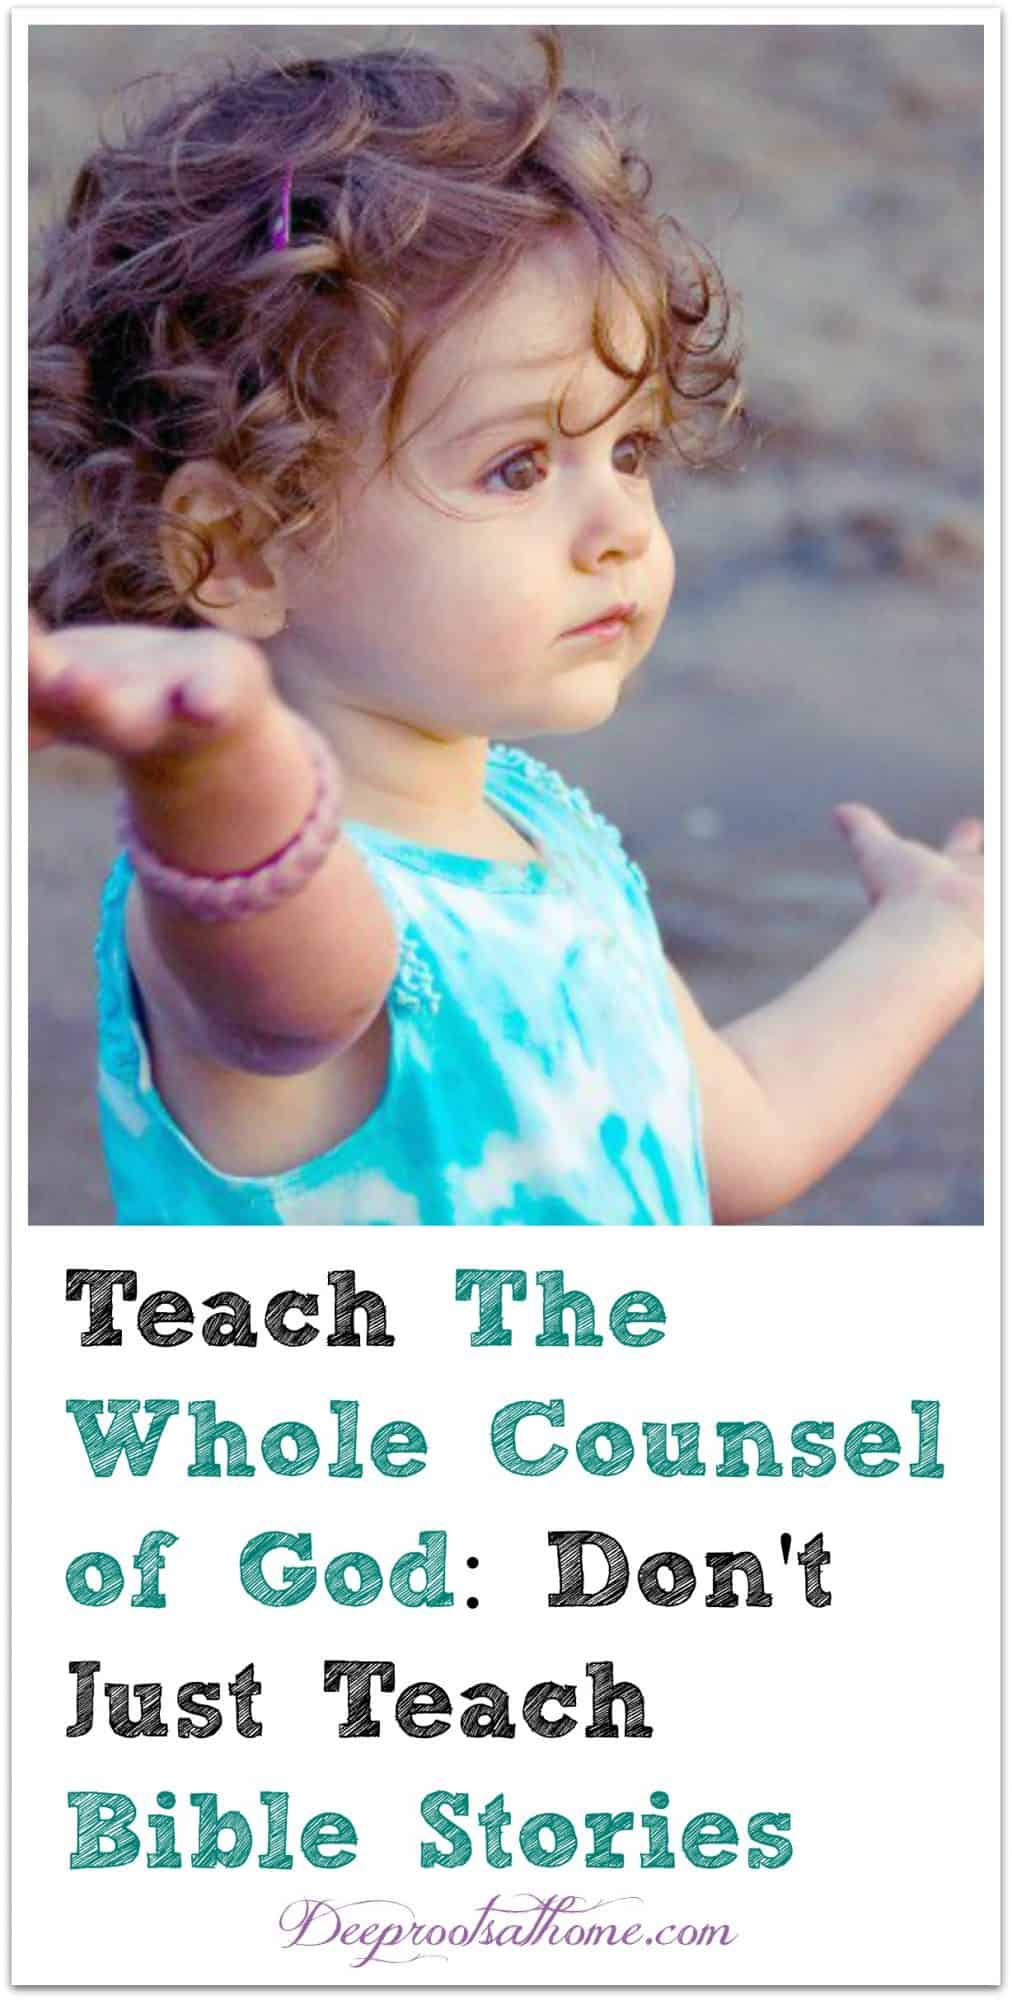 Teach The Whole Counsel of God: Don't Just Teach Bible Stories. A young girl with her hands raised in praise!